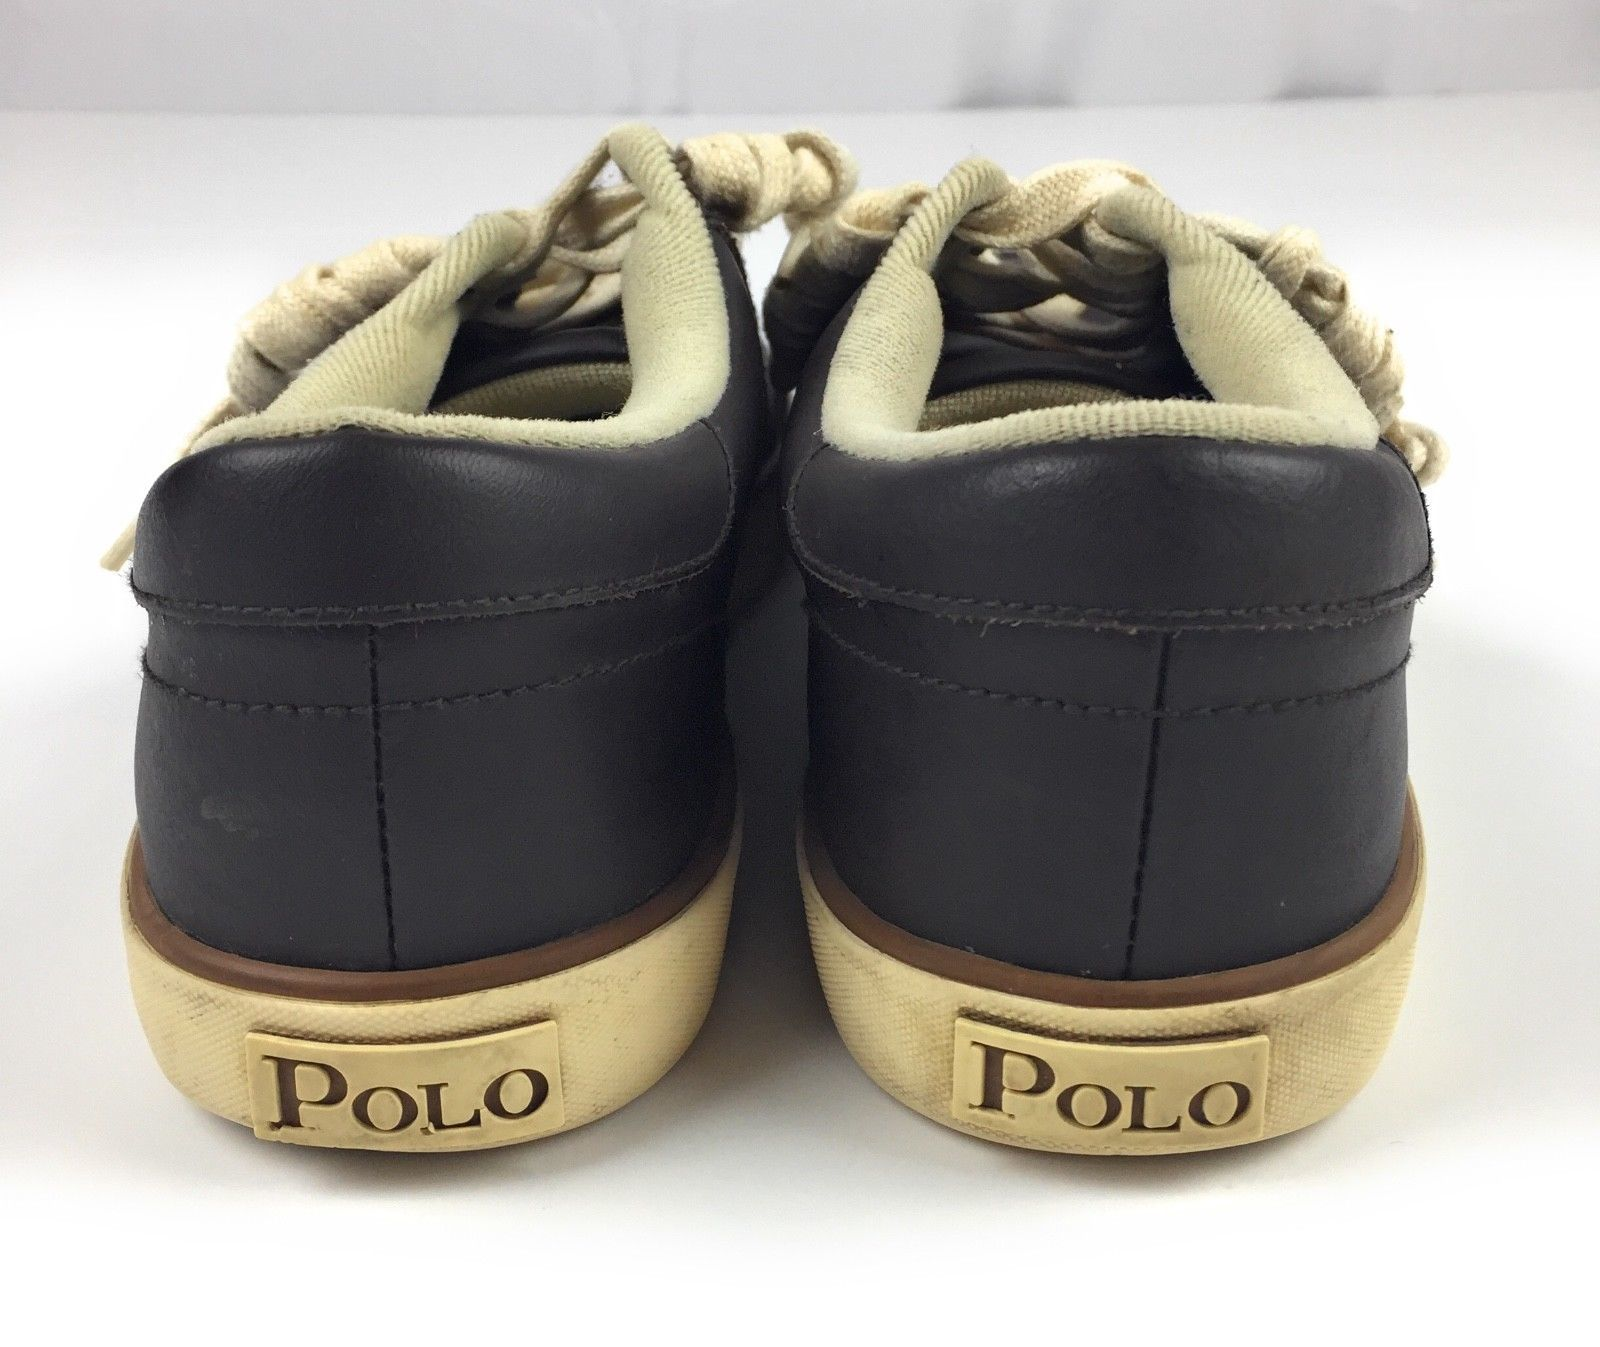 Polo Ralph Lauren Hanford Dark Brown Leather Deck Boat Sneakers Shoes Men's 9.5D